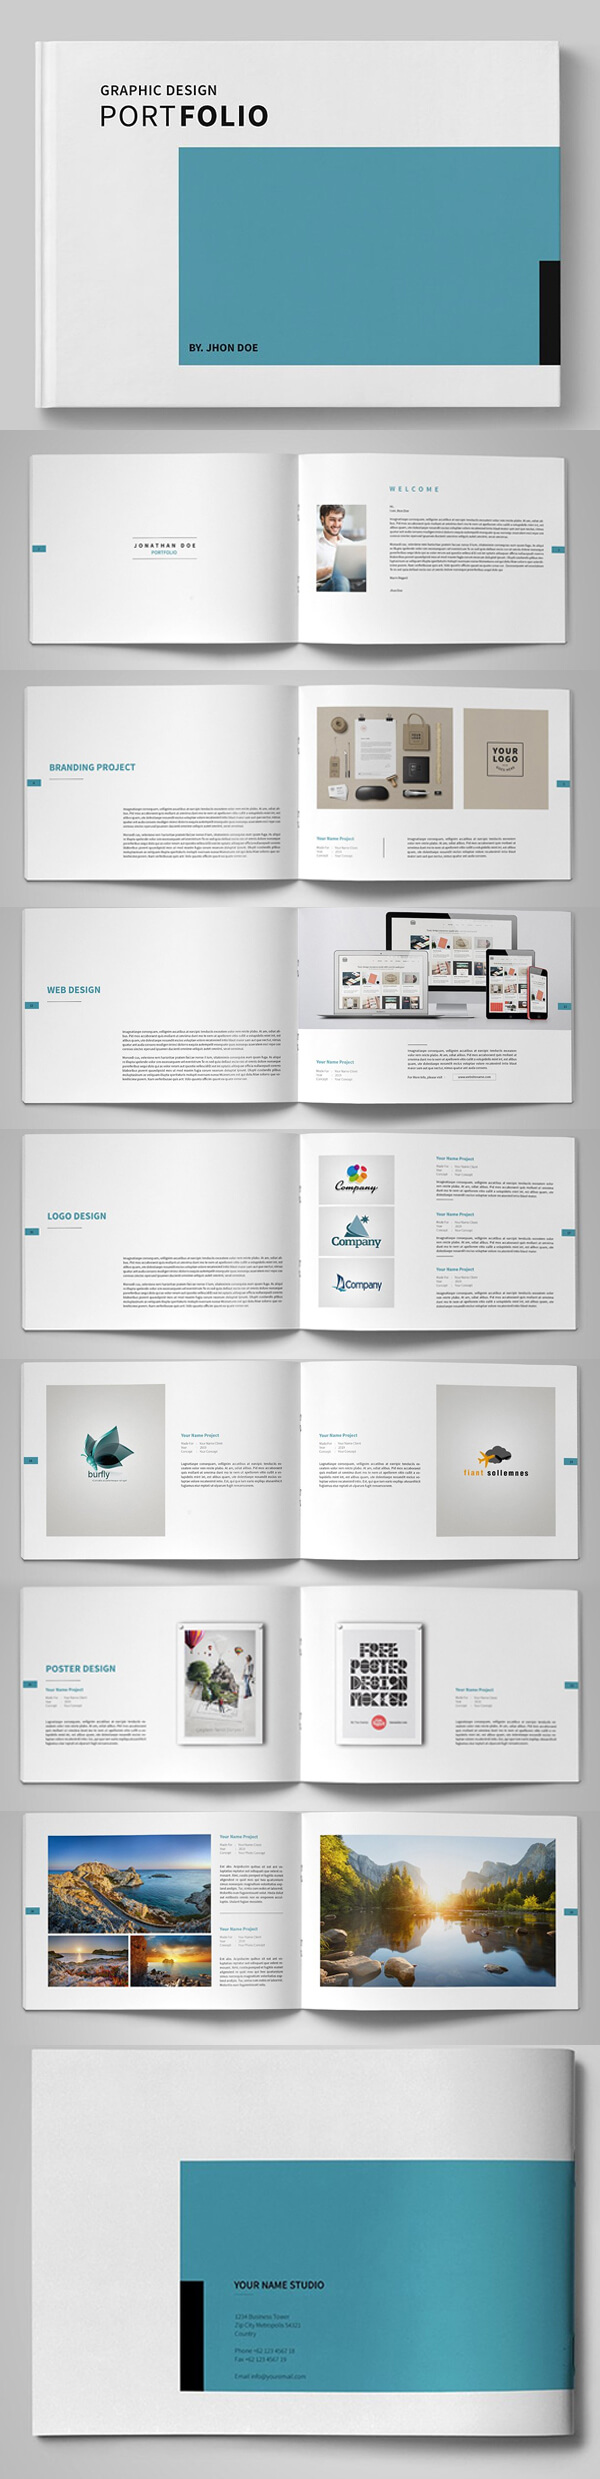 Free Product Brochure Design Templates - Yeppe With Product Brochure Template Free